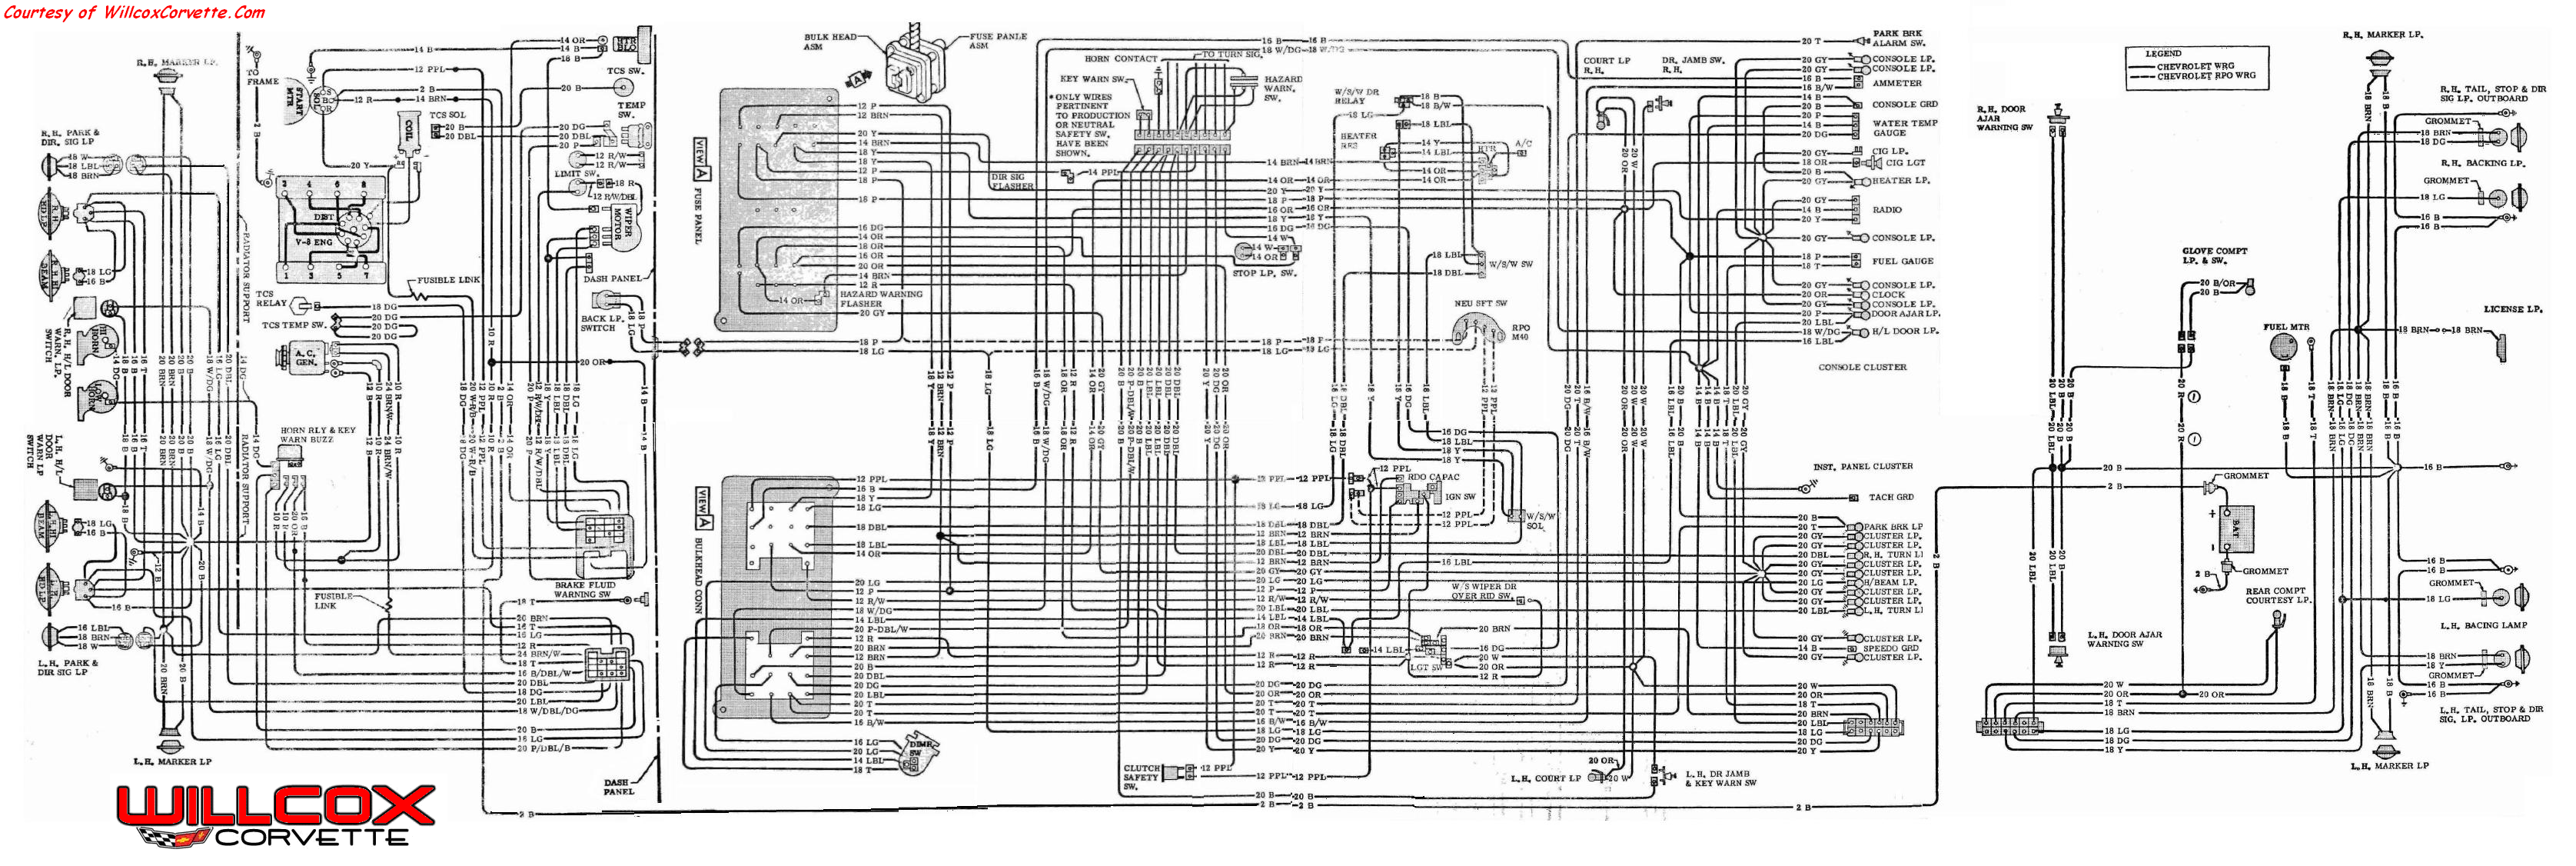 1970 Corvette Wire Schematic Tracer